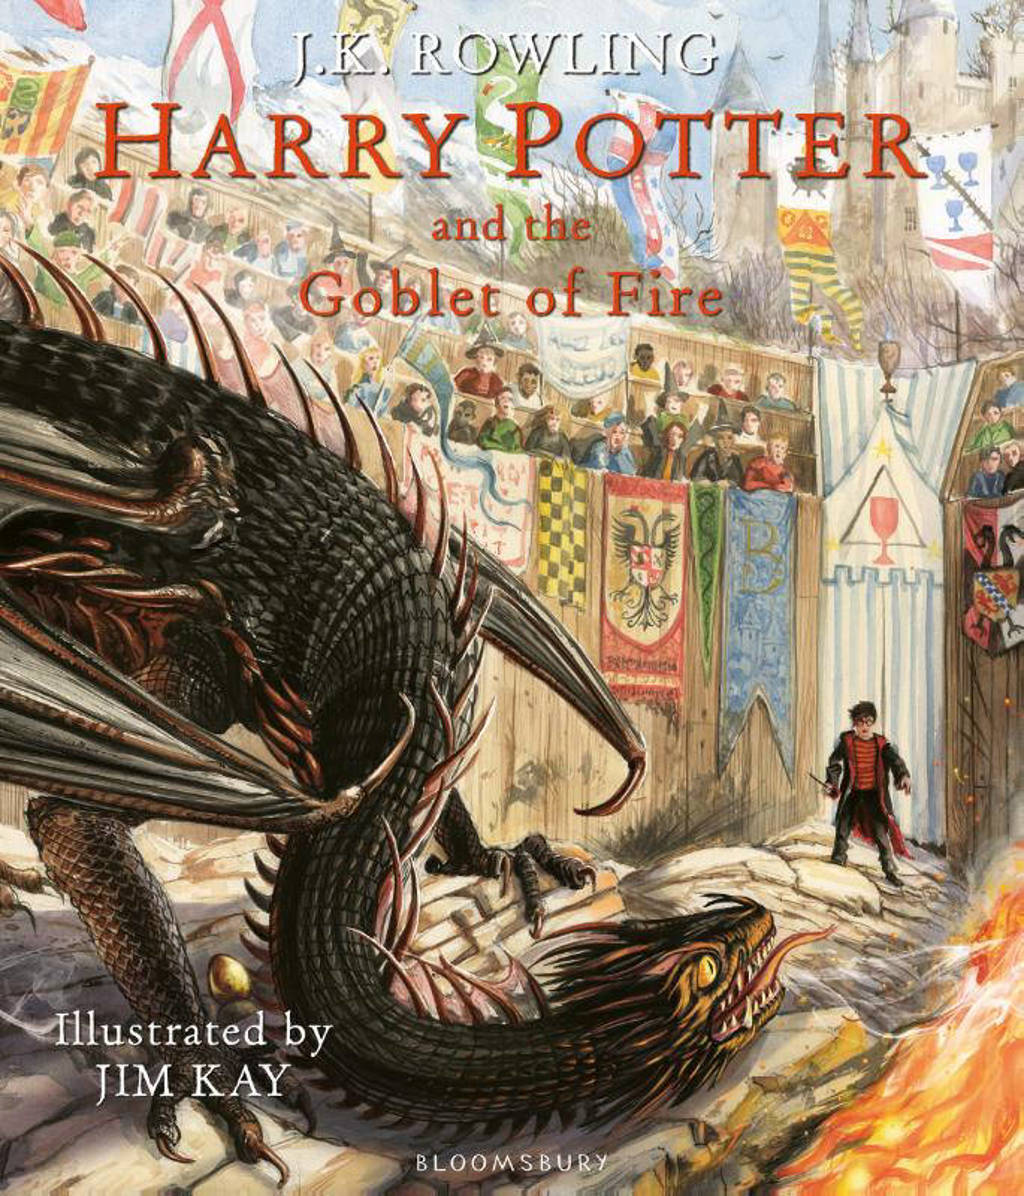 Harry Potter and the Goblet of Fire Illustrated edition - J.K. Rowling